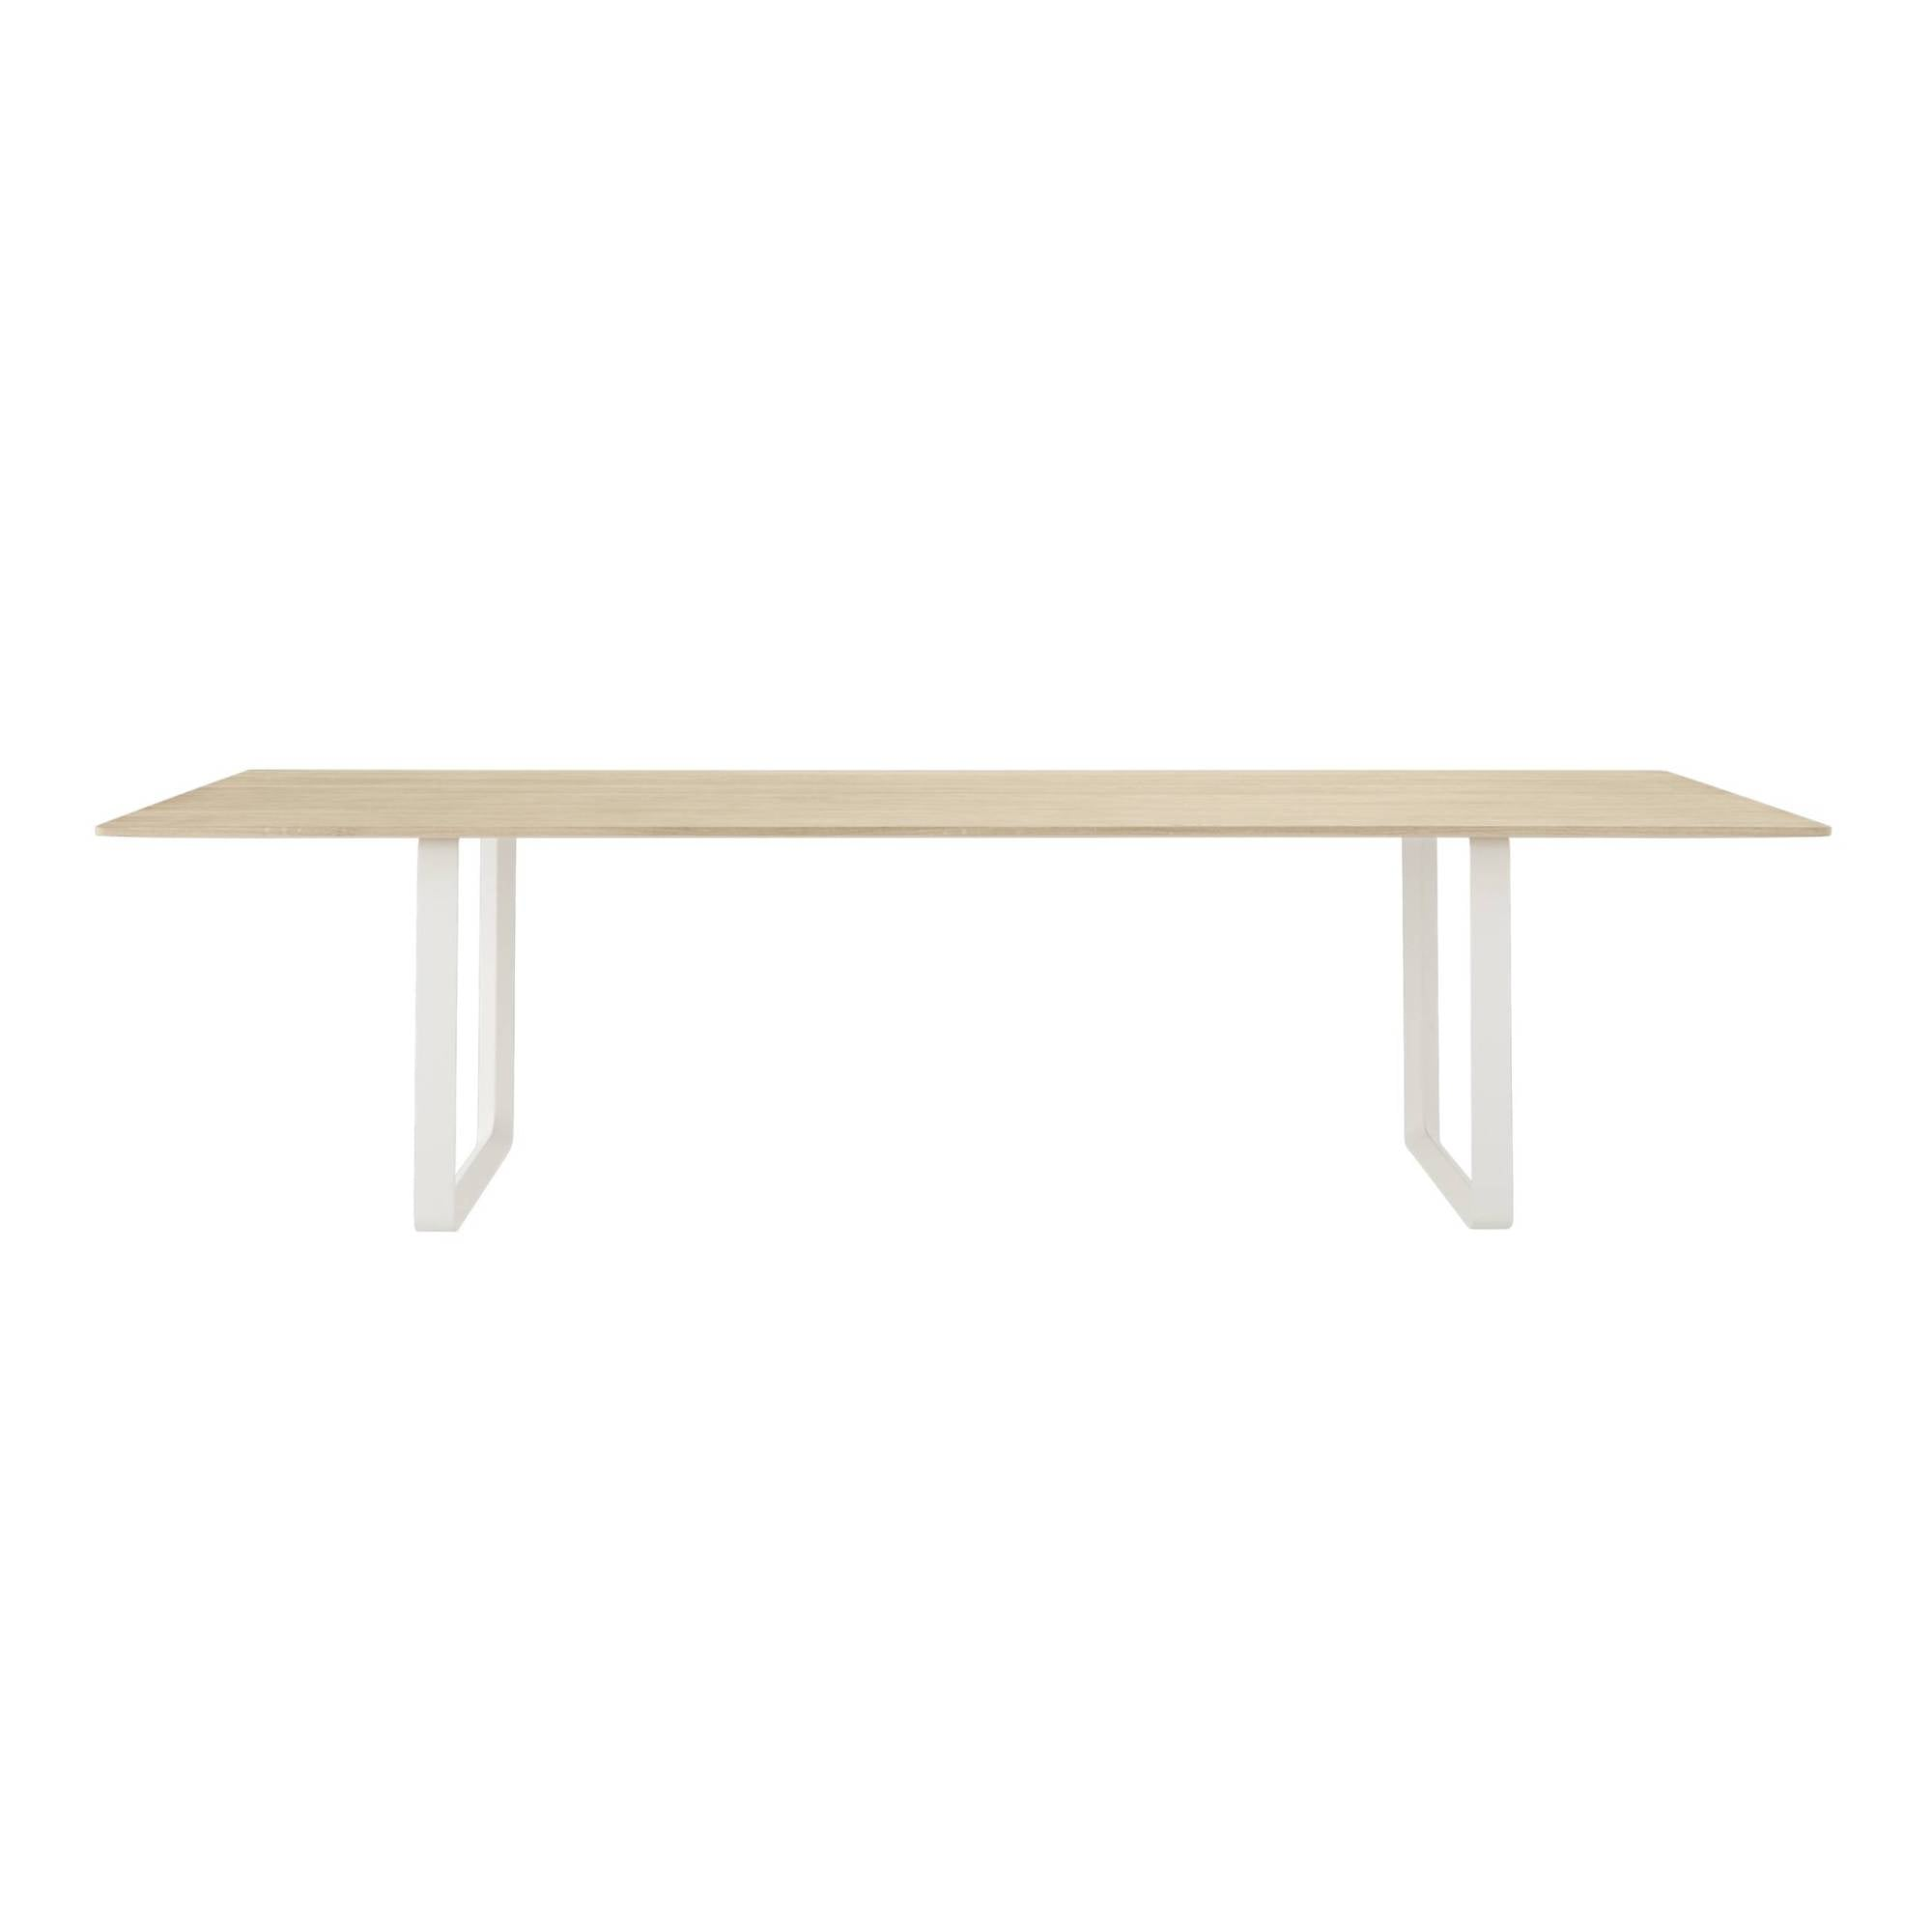 70/70 Table: Solid Oak + XX Large + White